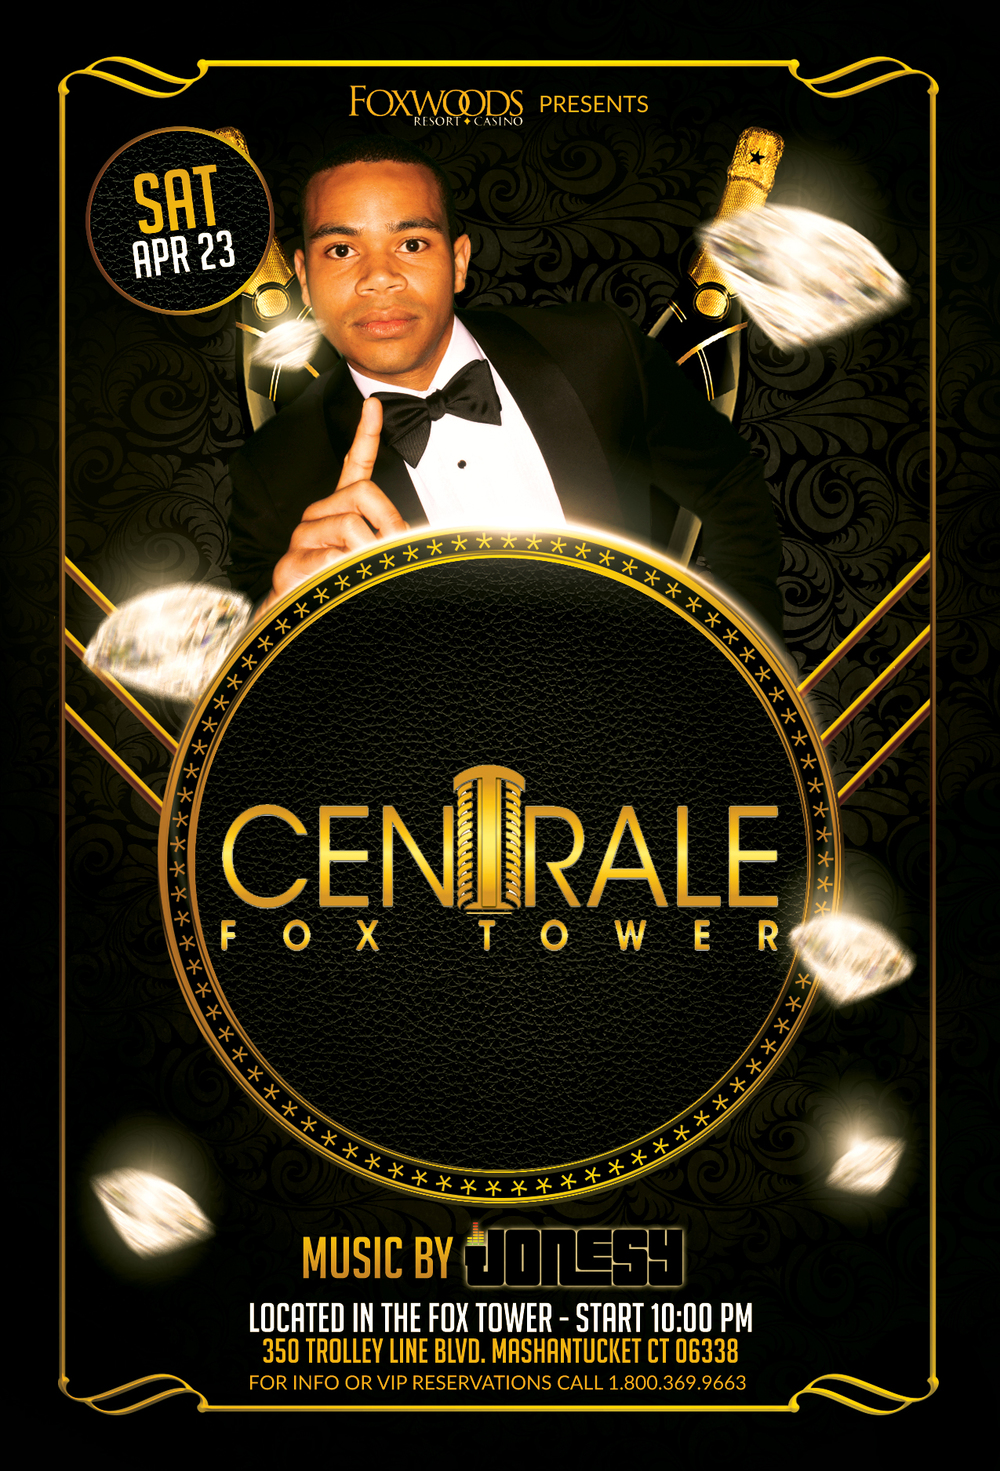 Saturday, April 23rd join me Centrale Fox Tower in Foxwoods Resort Casino for music by yours truly 10pm-close.